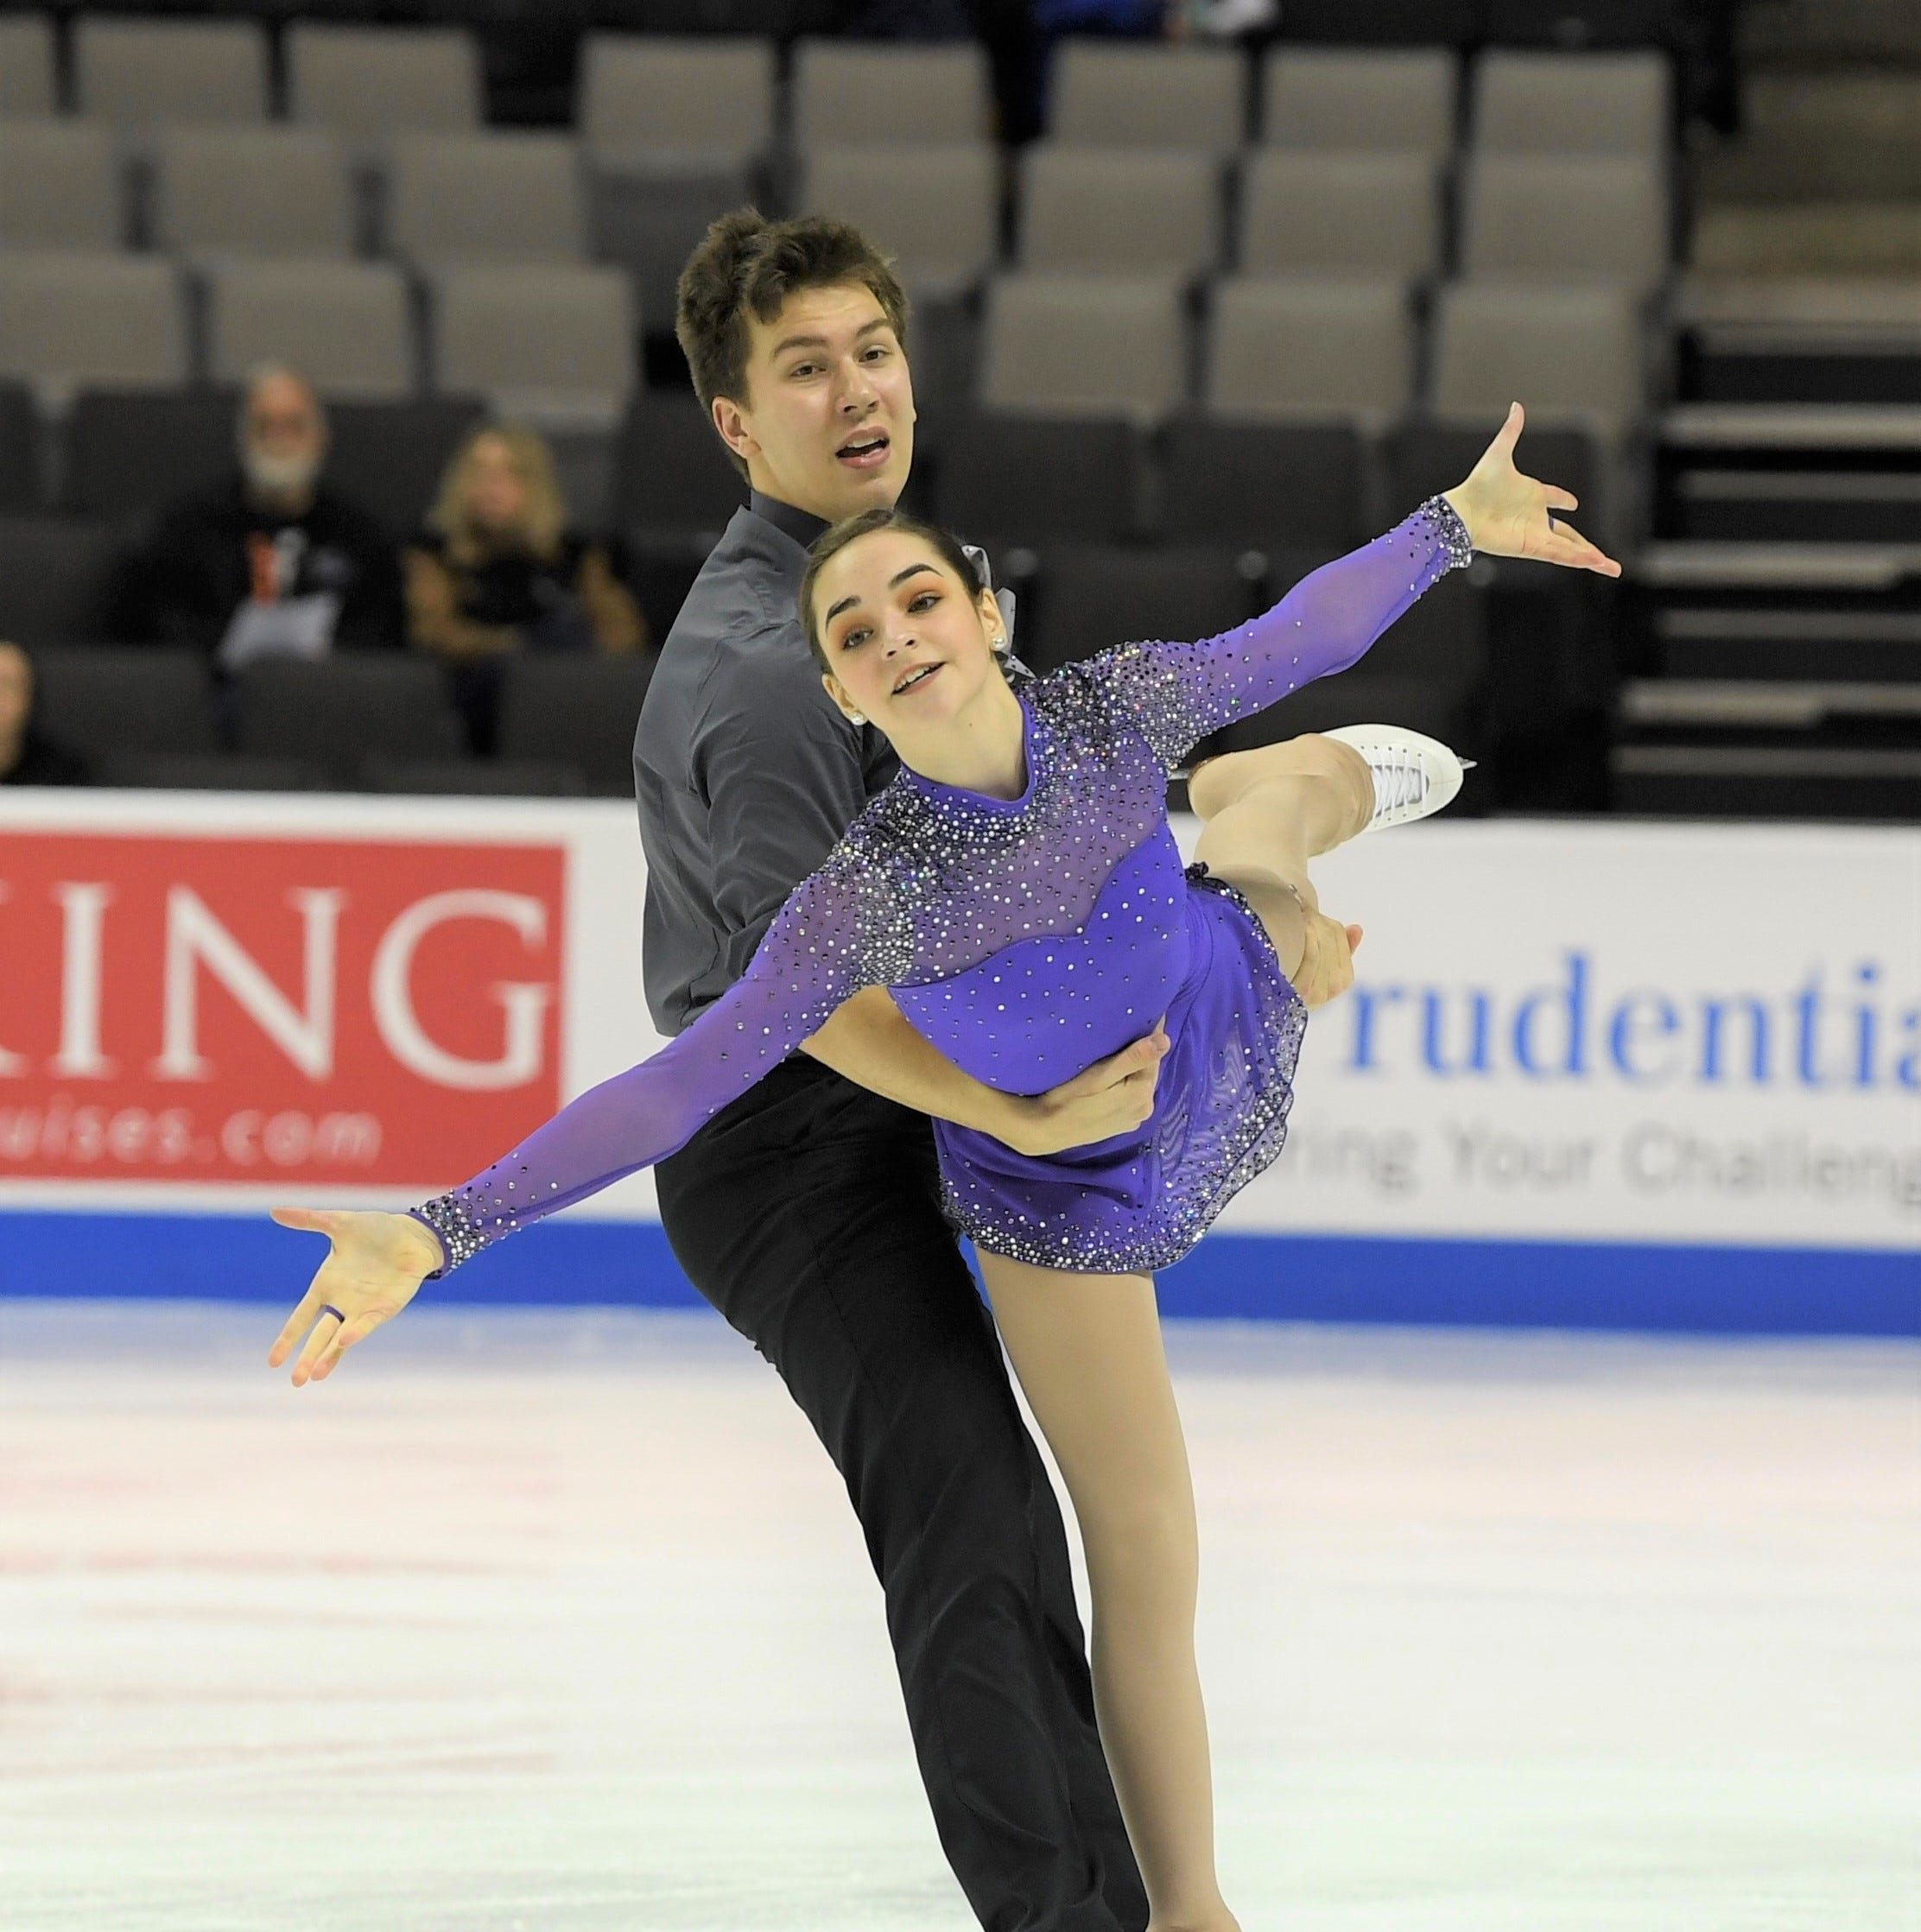 Pairs skaters DeWyre, Nussle hot and ready for U.S. Nationals at Little Caesars